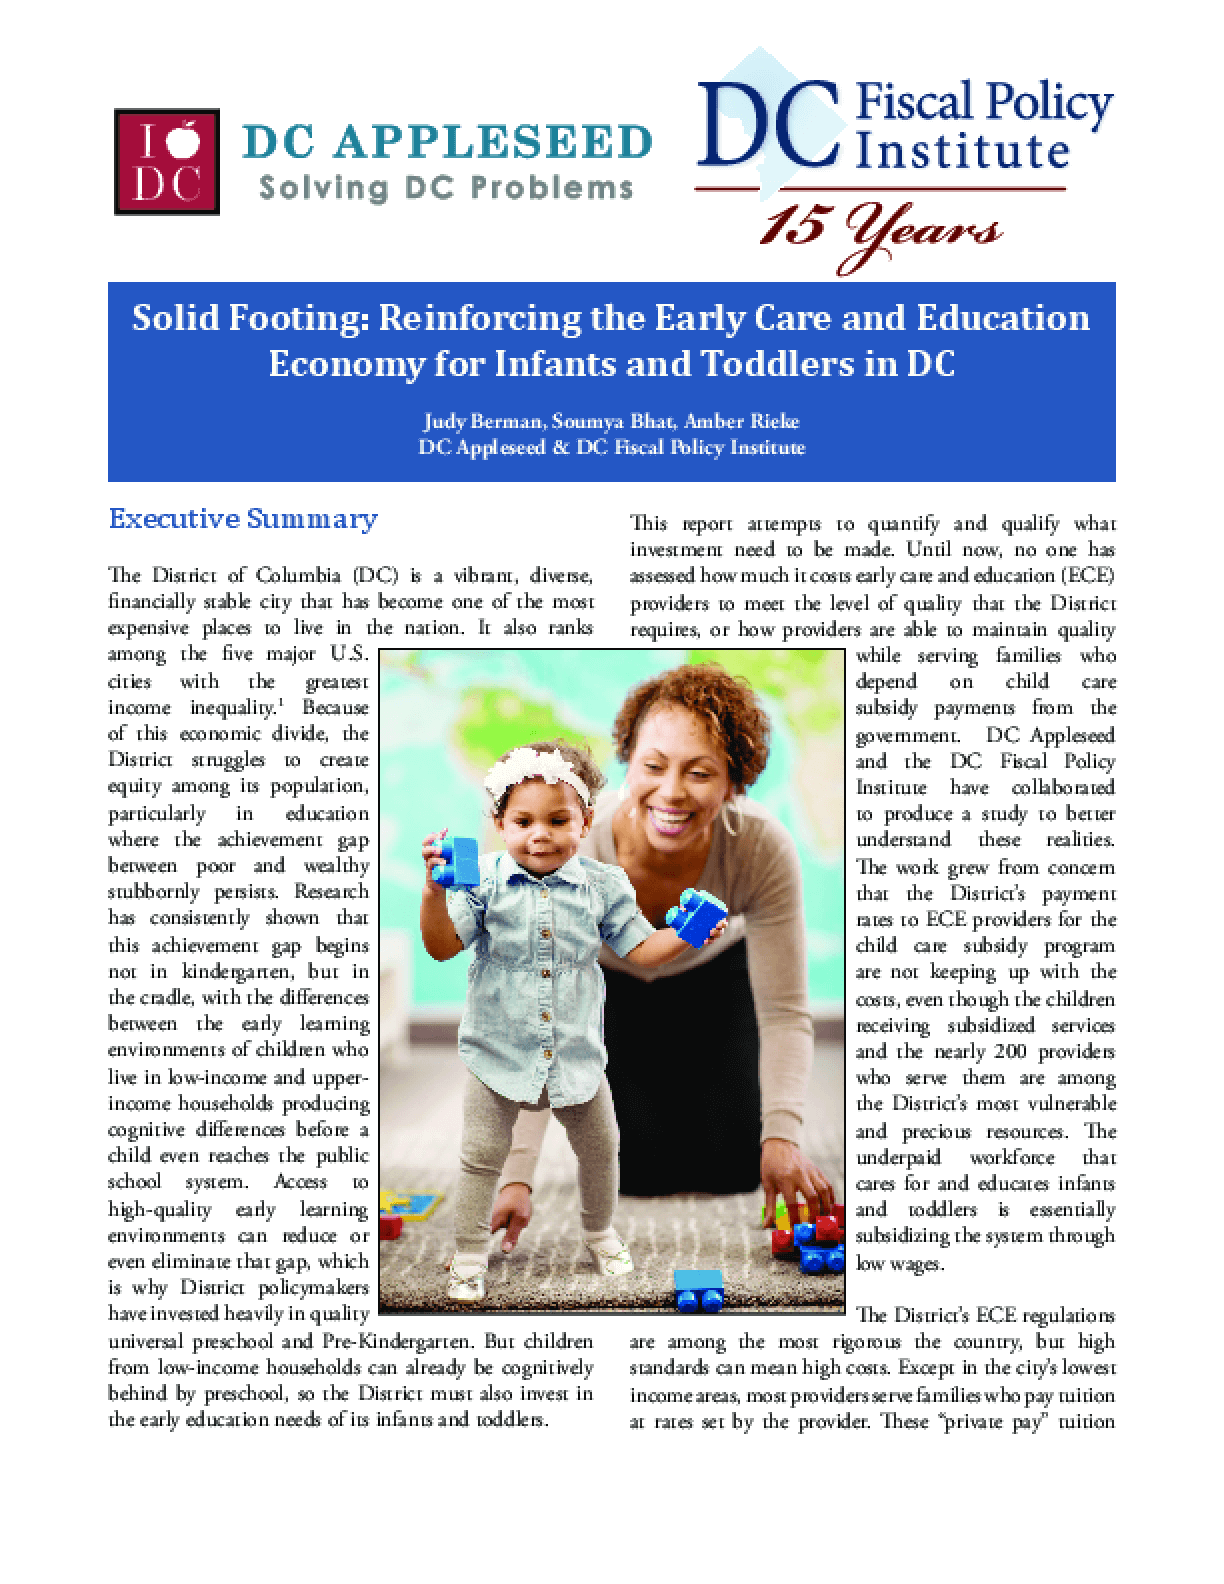 Solid Footing: Reinforcing the Early Care and Education Economy for Infants and Toddlers in DC